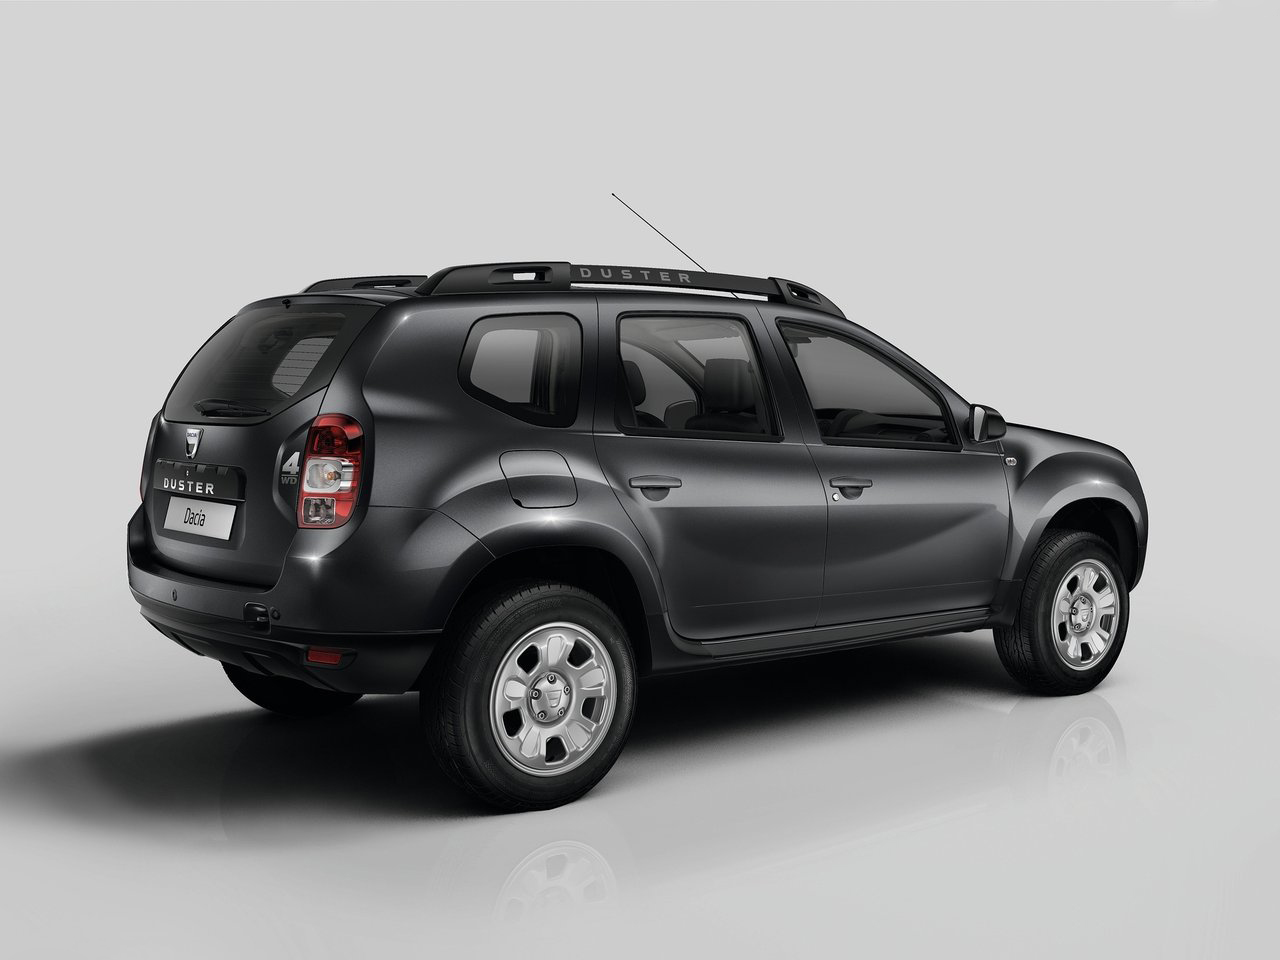 nouveau dacia duster dacia chartres luisant. Black Bedroom Furniture Sets. Home Design Ideas